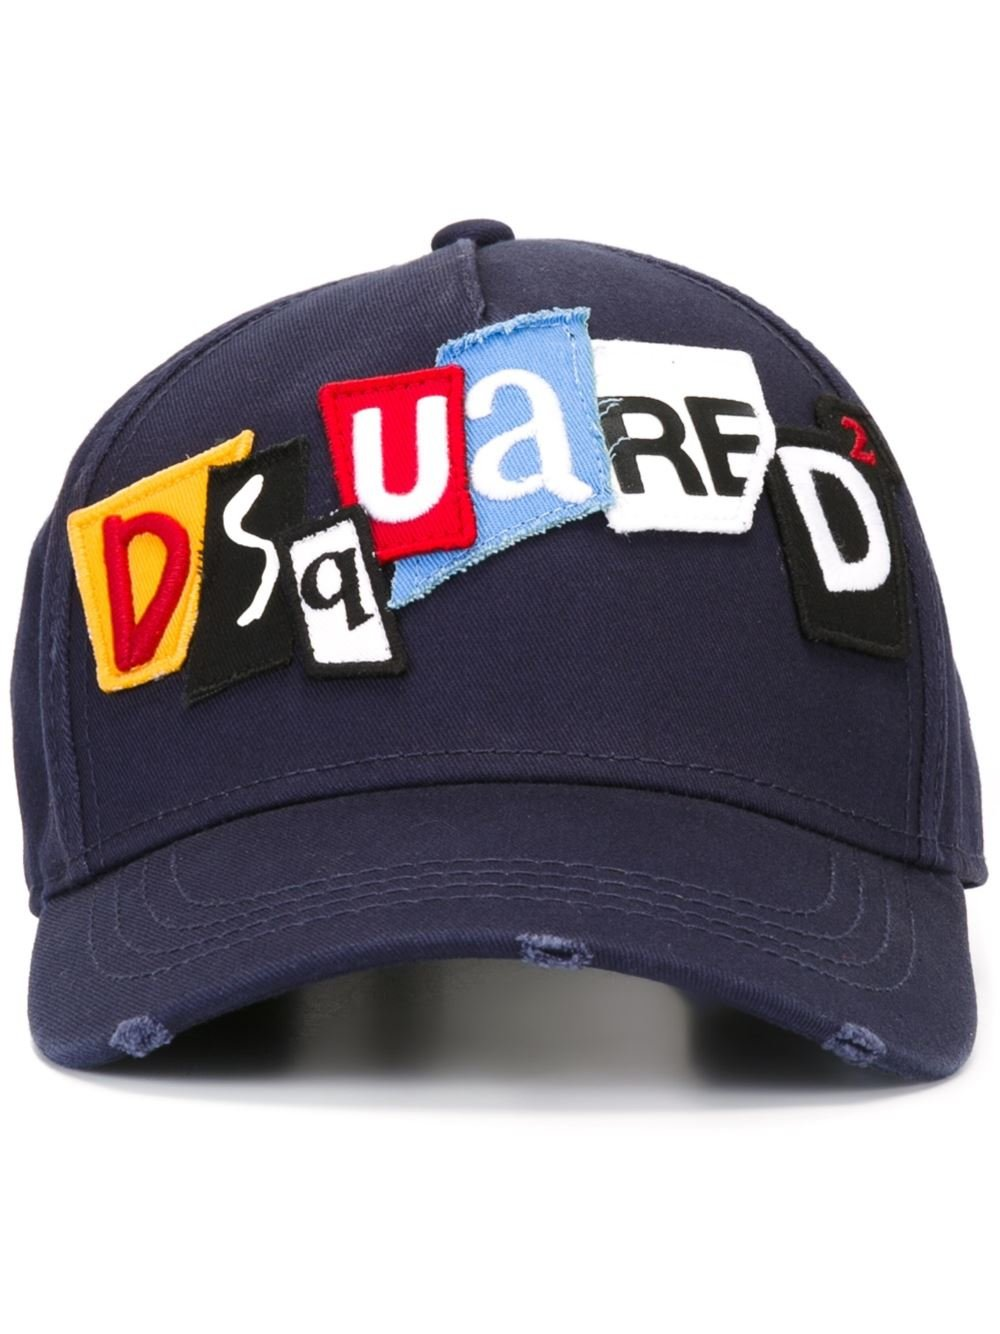 Lyst - DSquared² Punk Patch Baseball Cap in Blue for Men 8c8737eaabf0